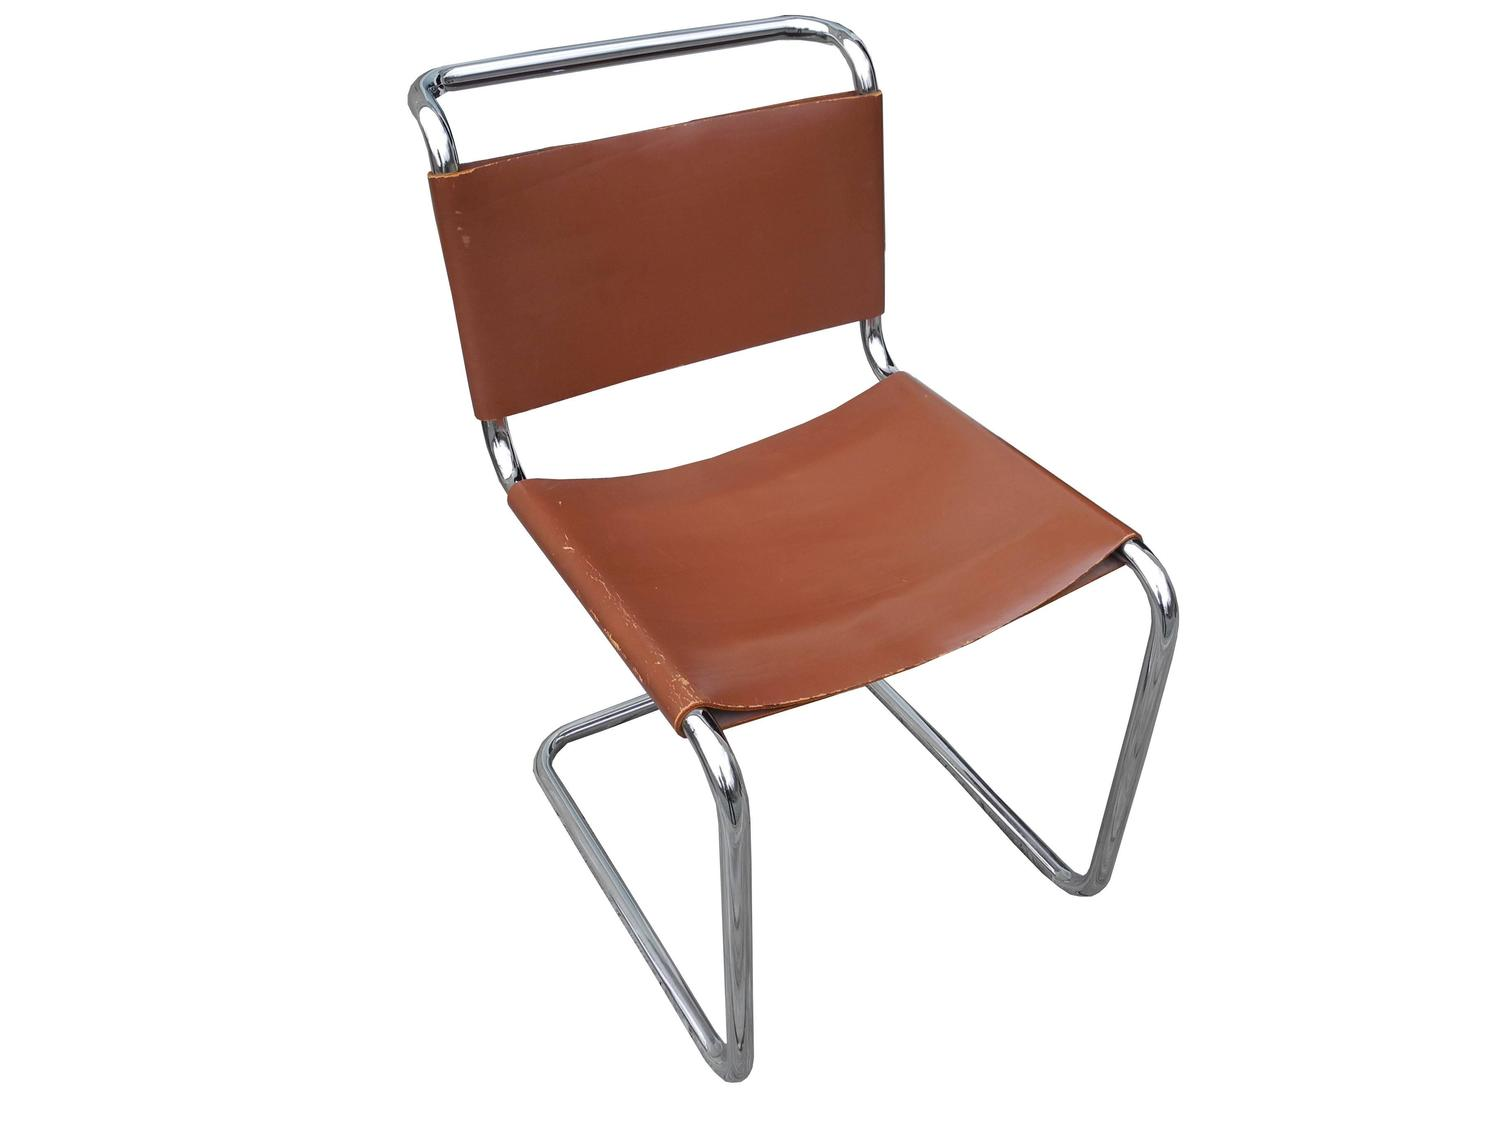 Bauhaus Design Cantilevered Tubular Metal And Saddle Leather Chair By Mart  Stam For Sale At 1stdibs